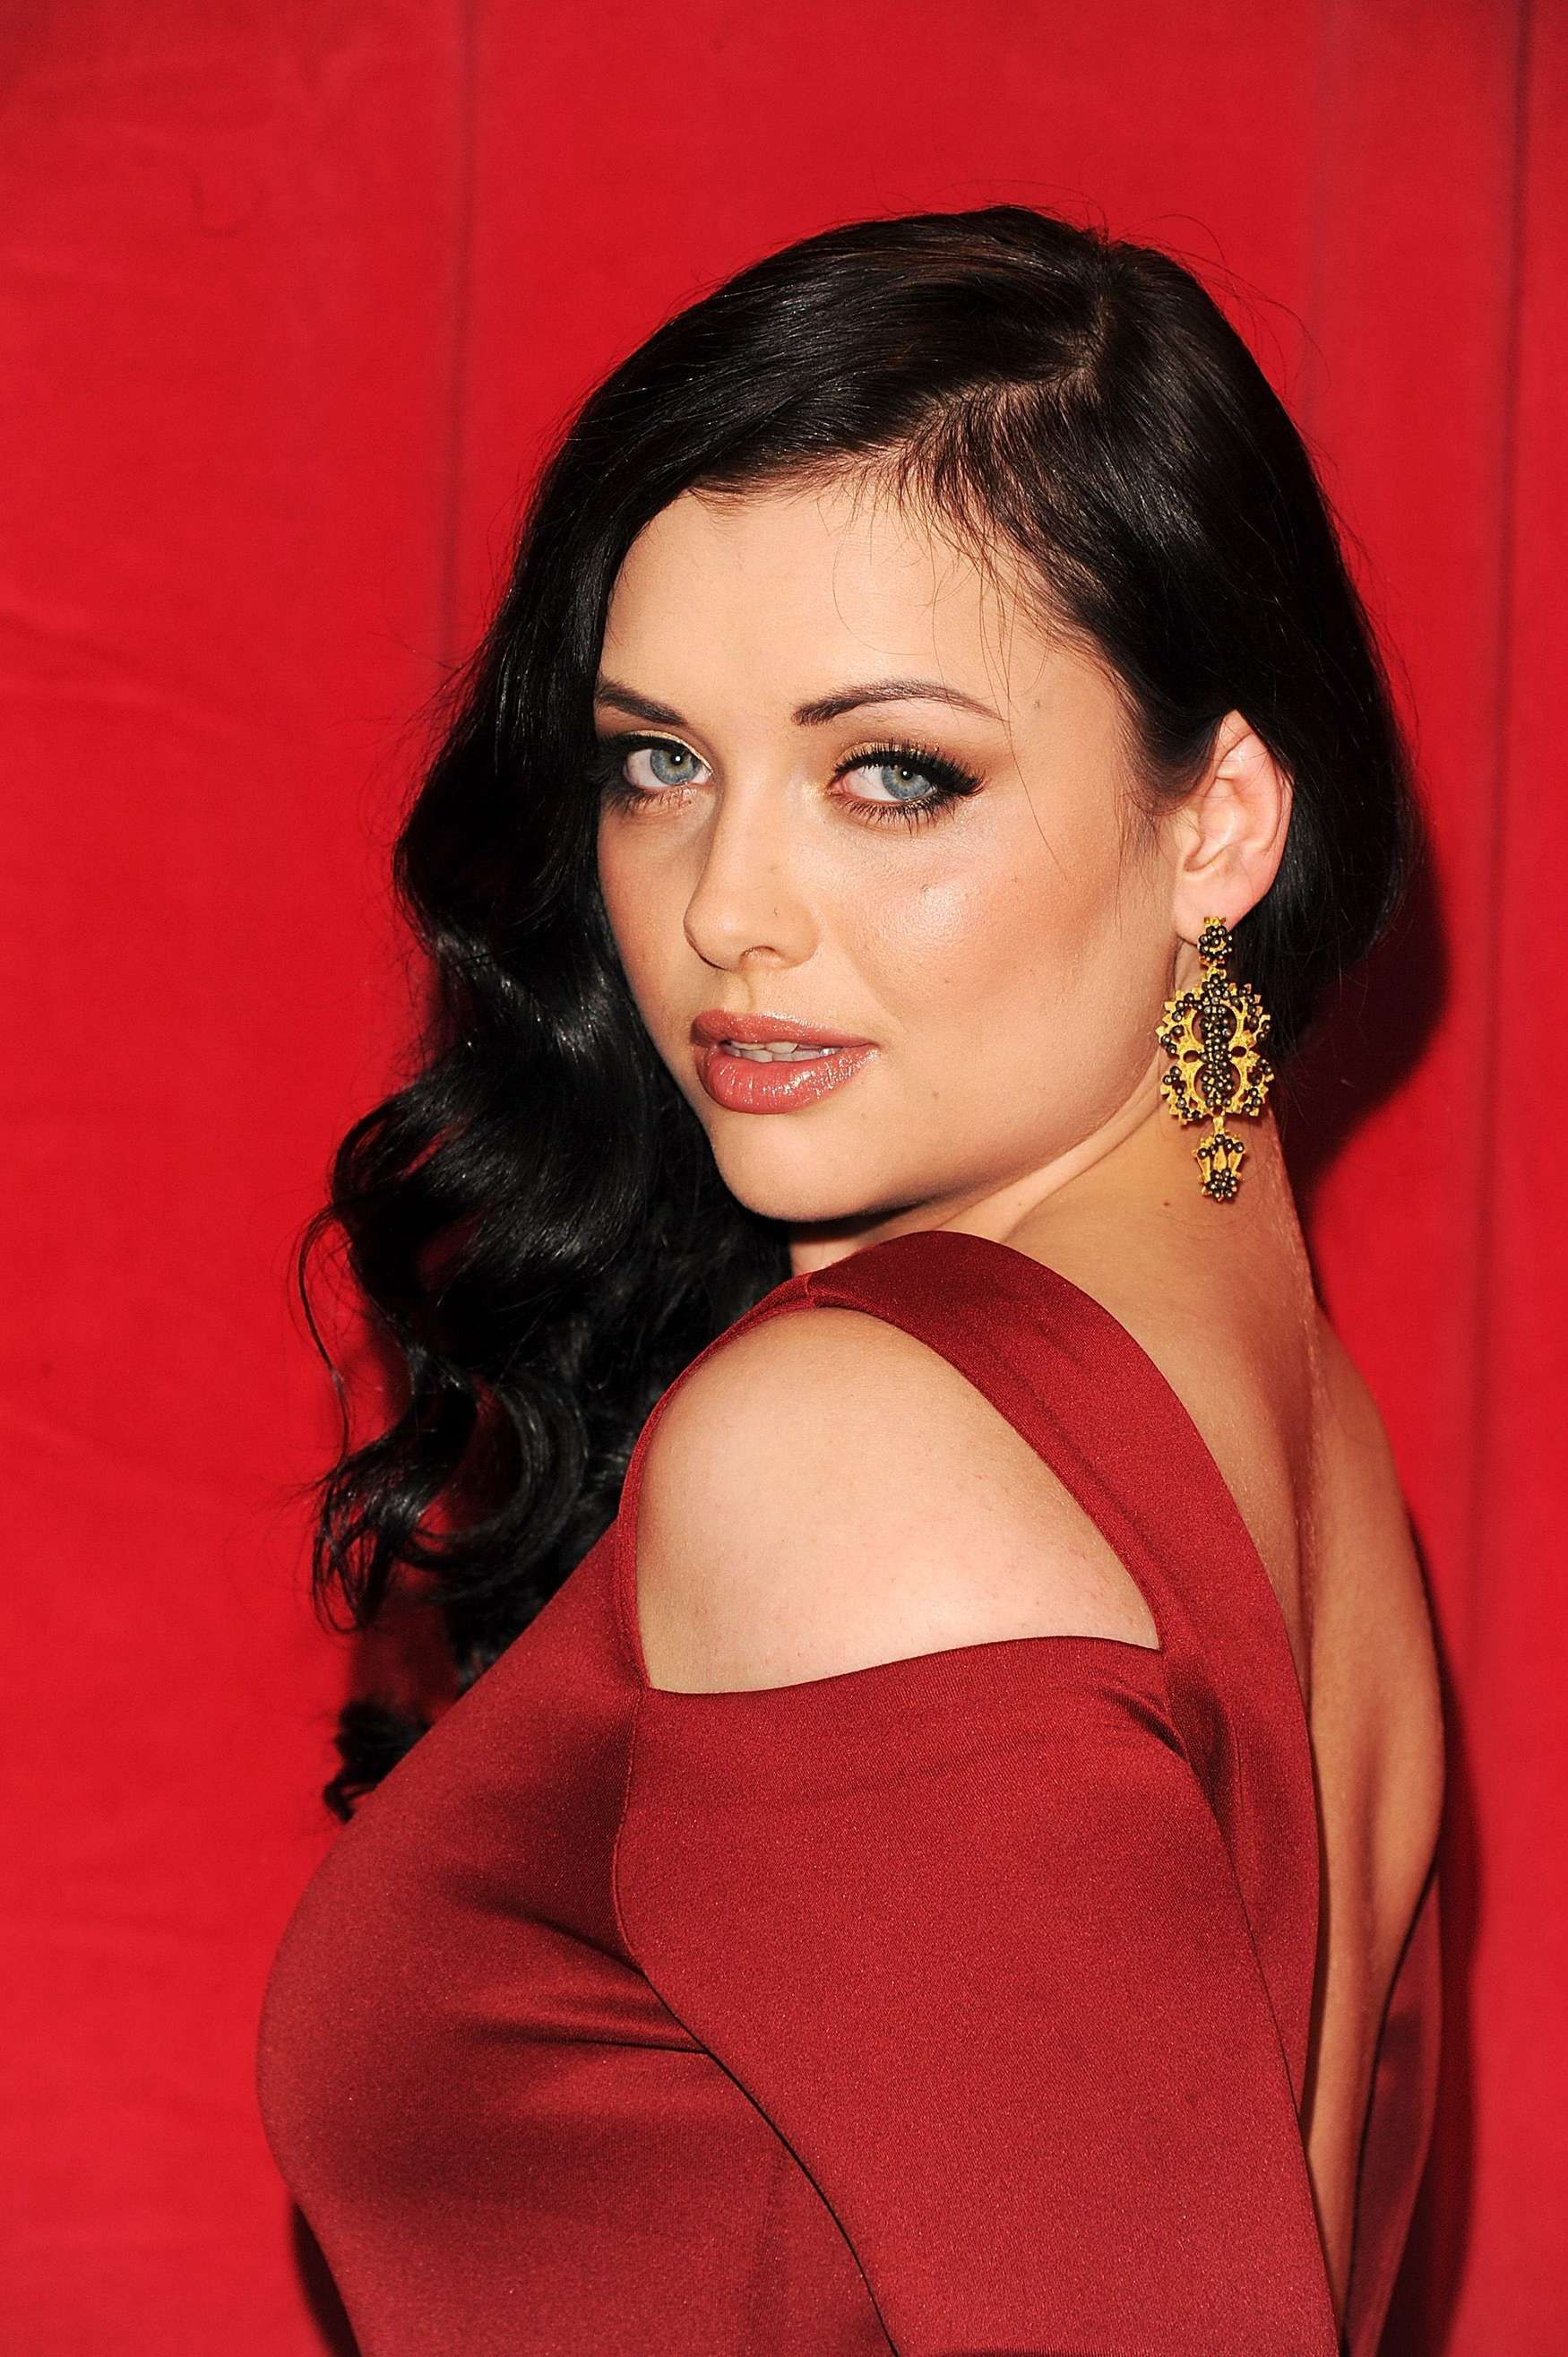 Celebrity Shona Mcgarty nude photos 2019